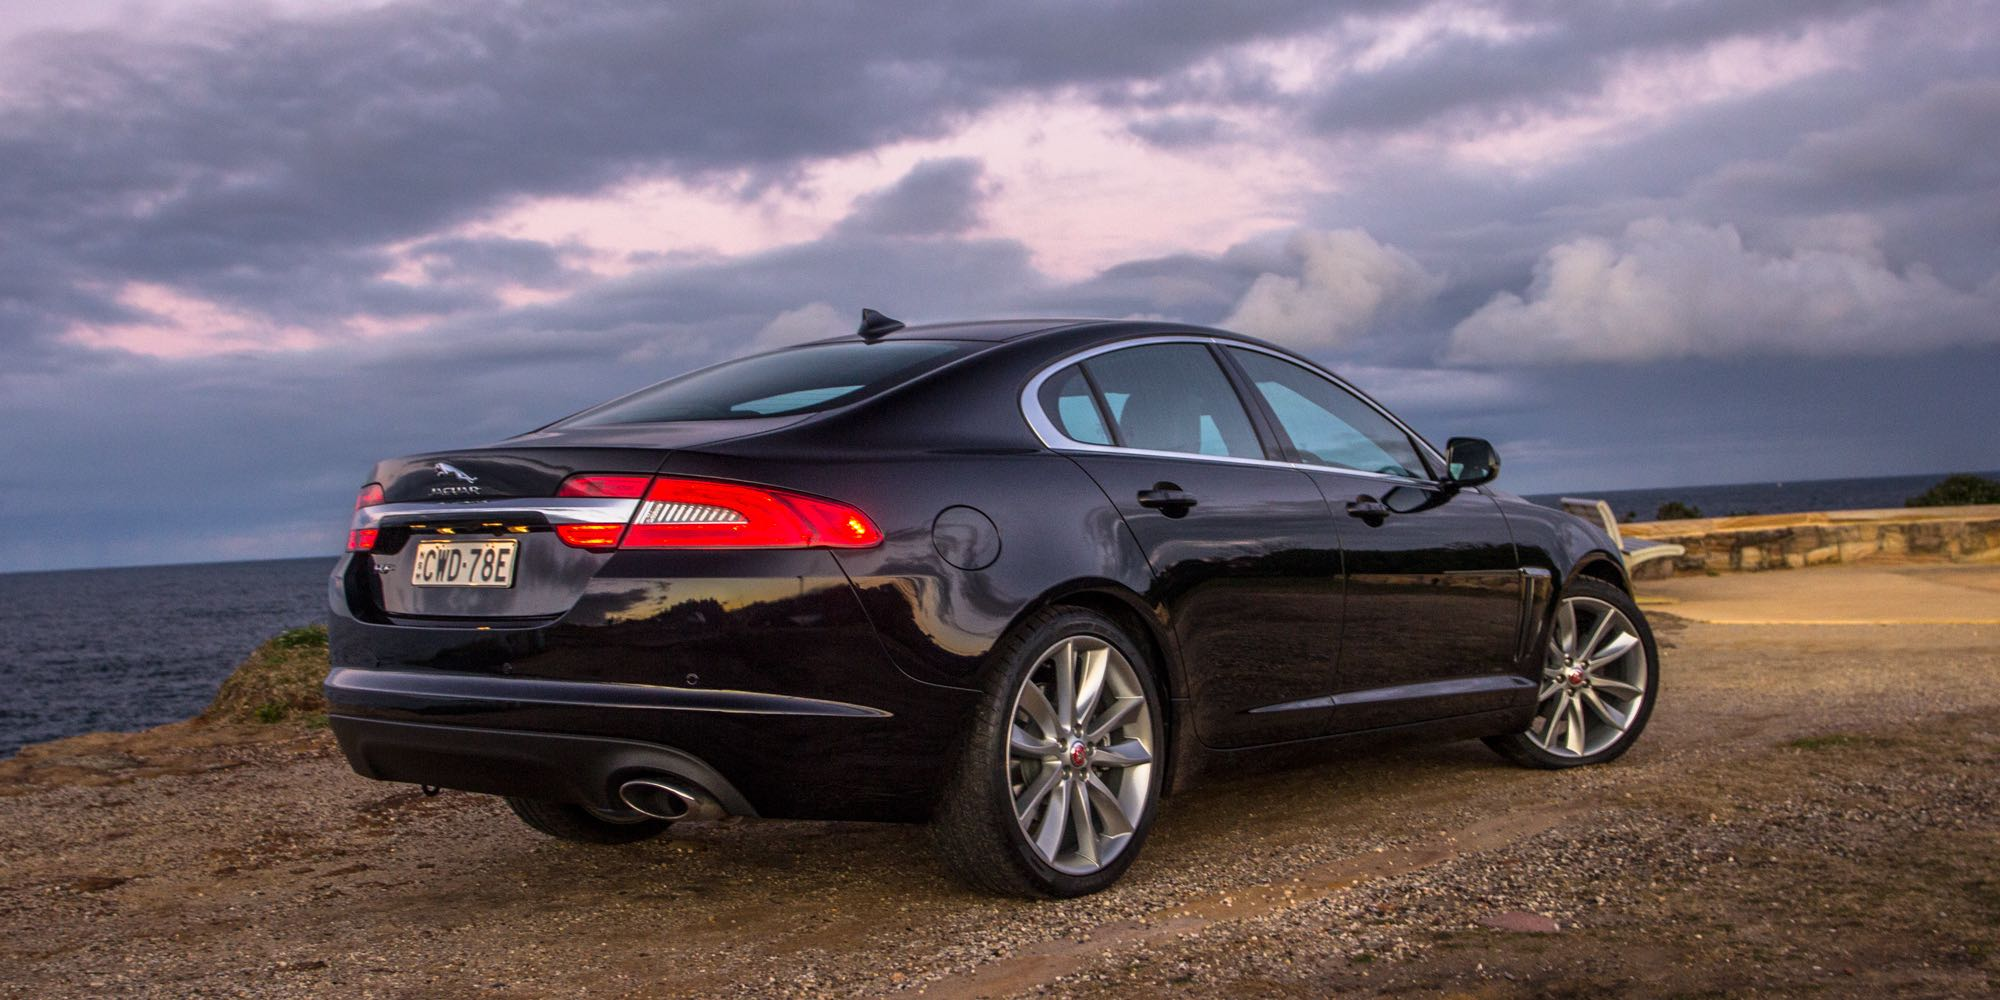 2015 Jaguar XF Review : 2 2D Premium Luxury | CarAdvice